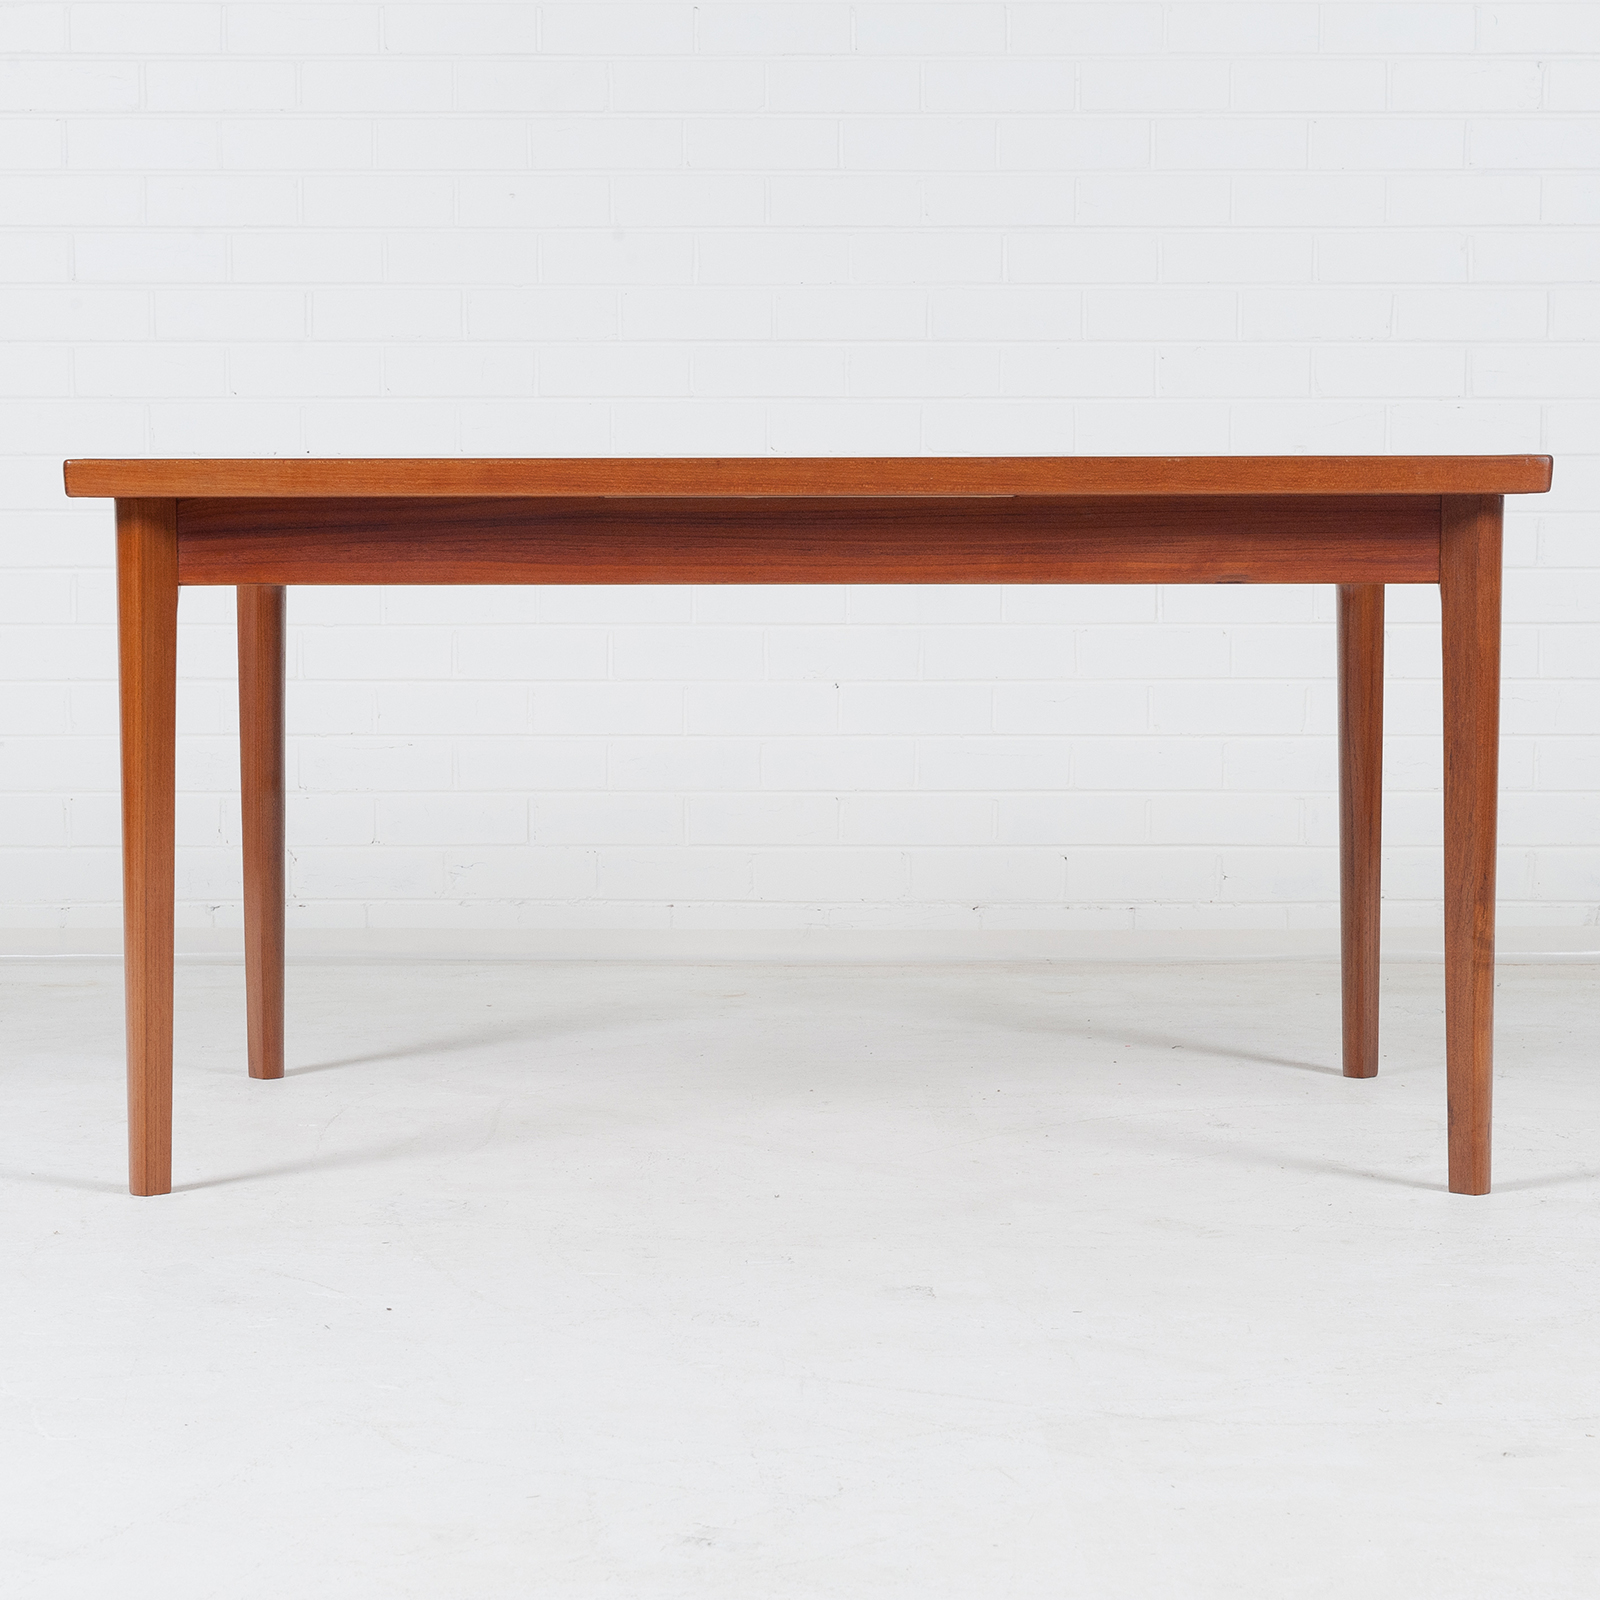 Dining Table In Teak With Two Extensions And